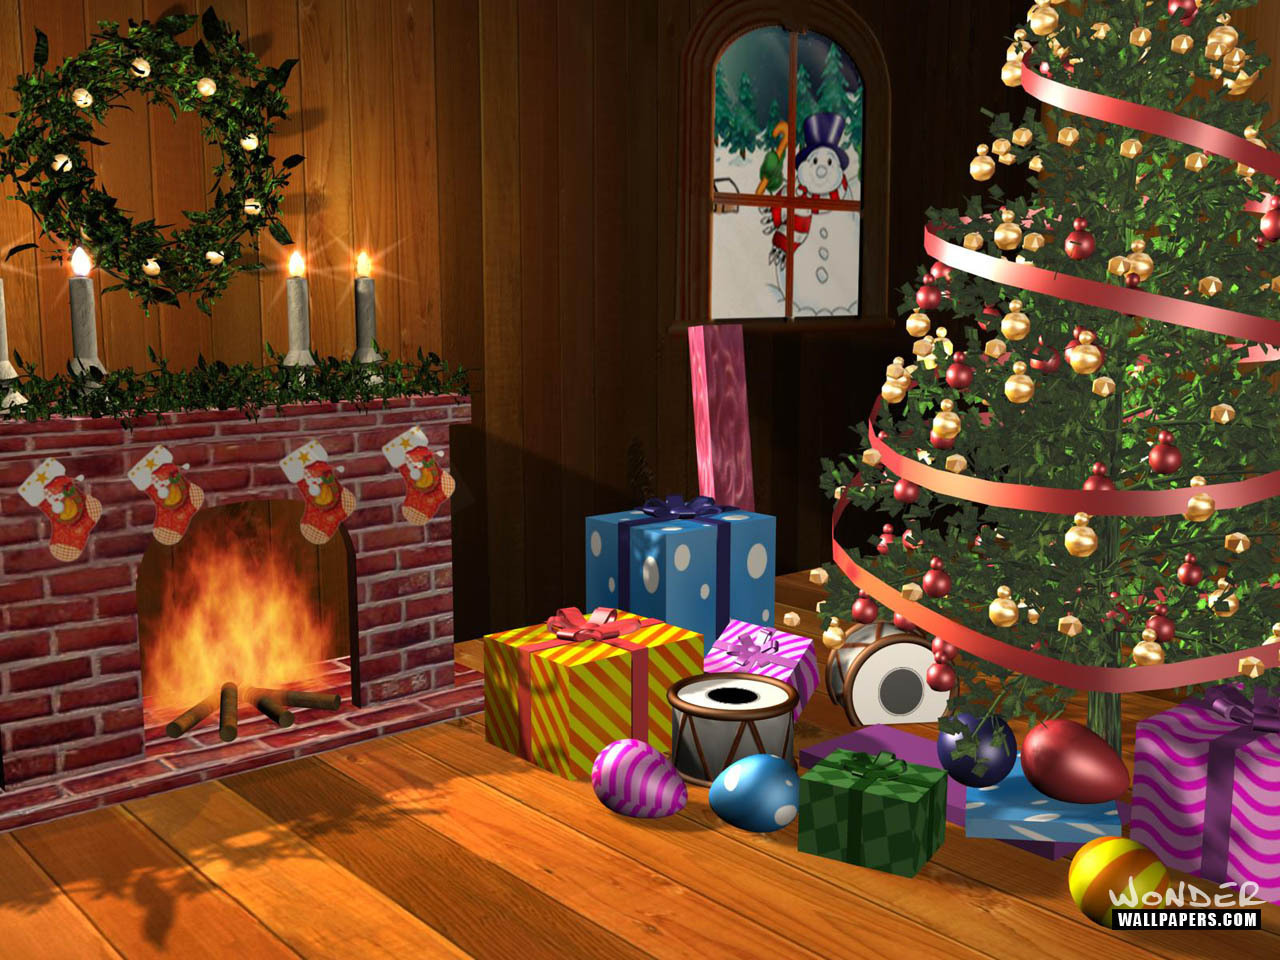 Christmas Scenes Wallpaper hd image